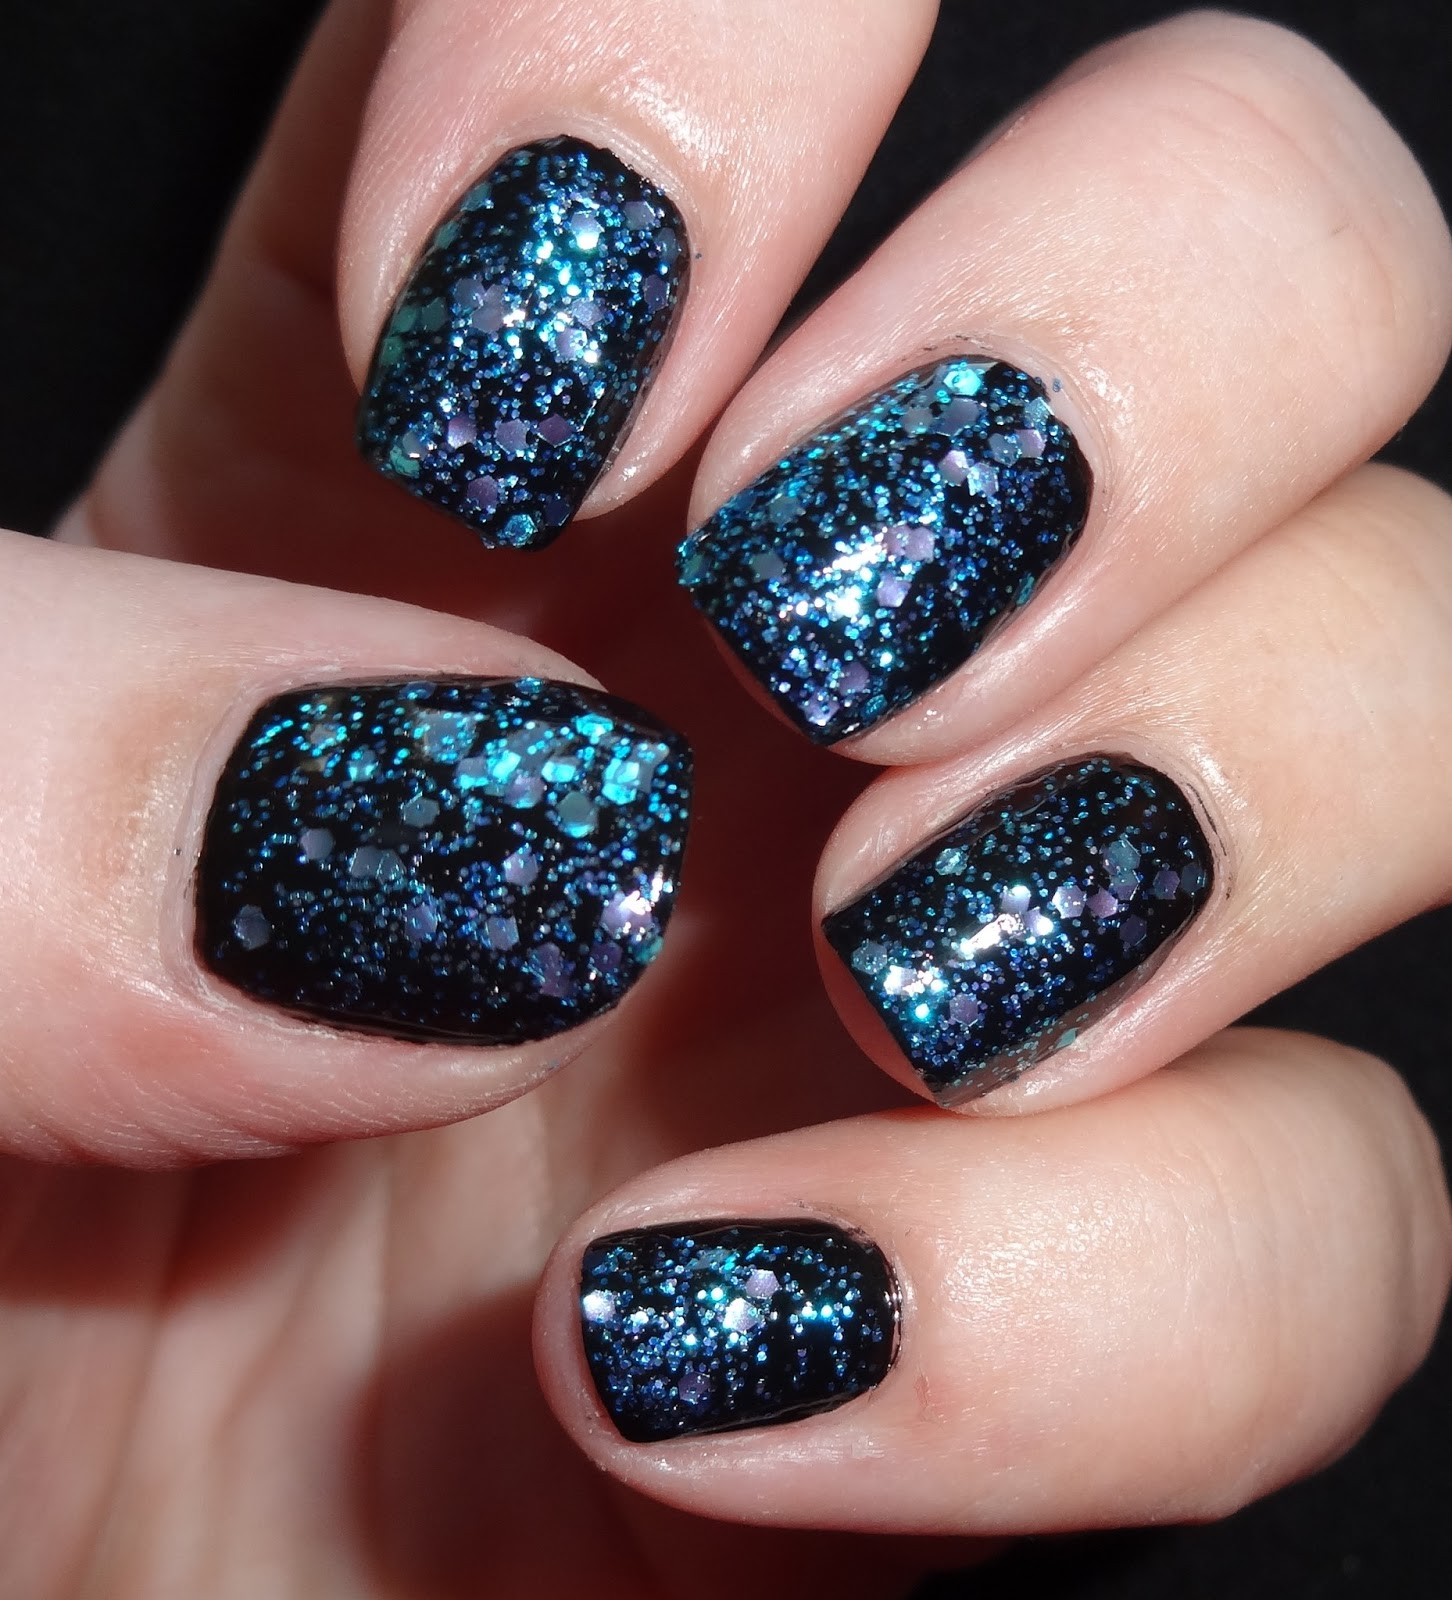 Shimmer And Sparkle Nail Polish: Wendy's Delights: Tmart Glitter Nail Polish